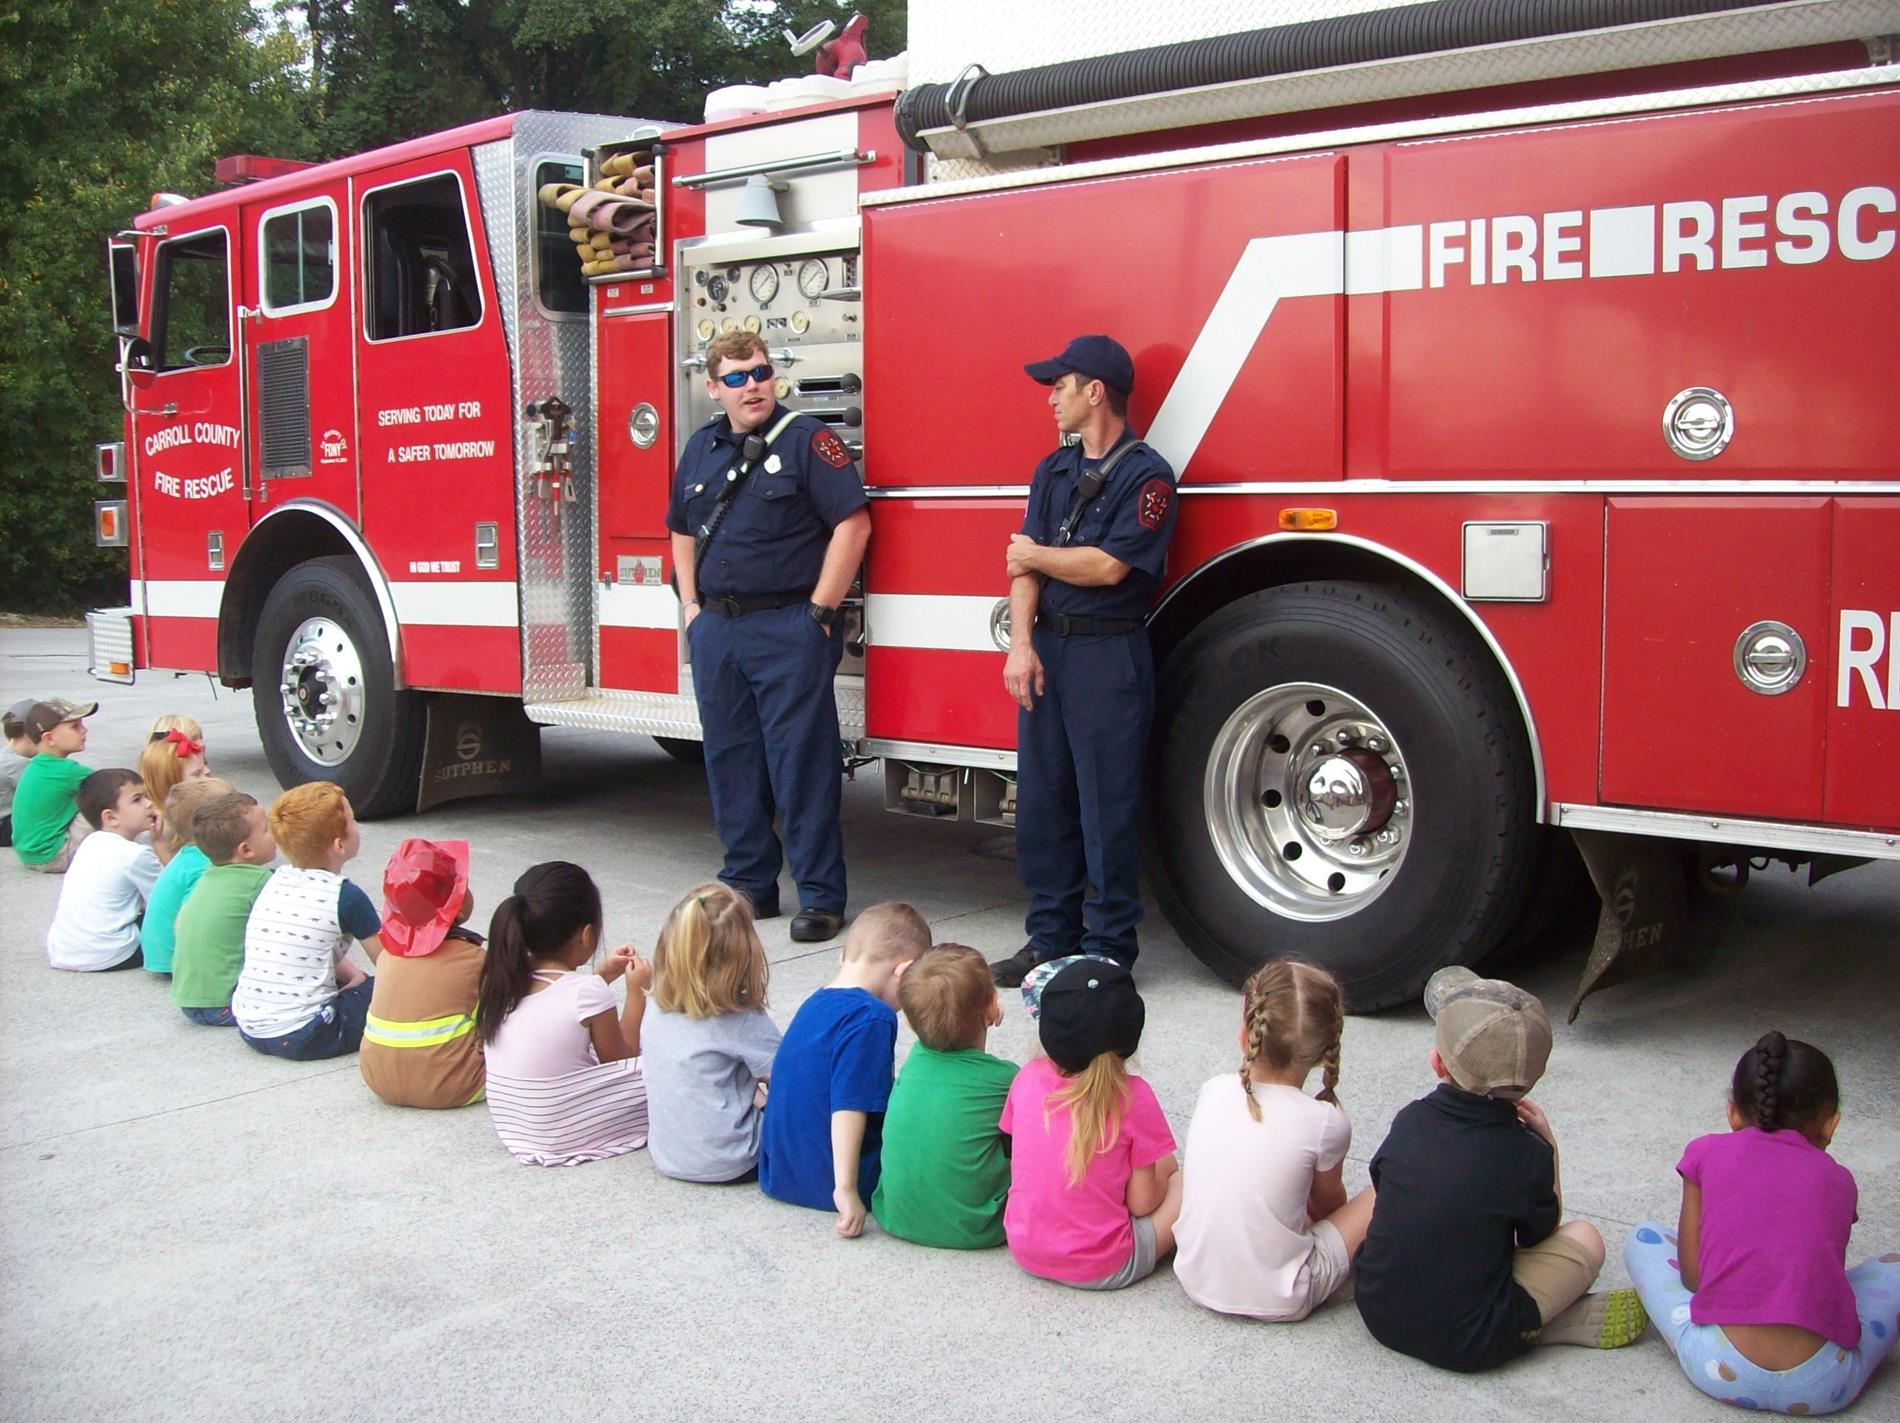 Prek and Fire Truck